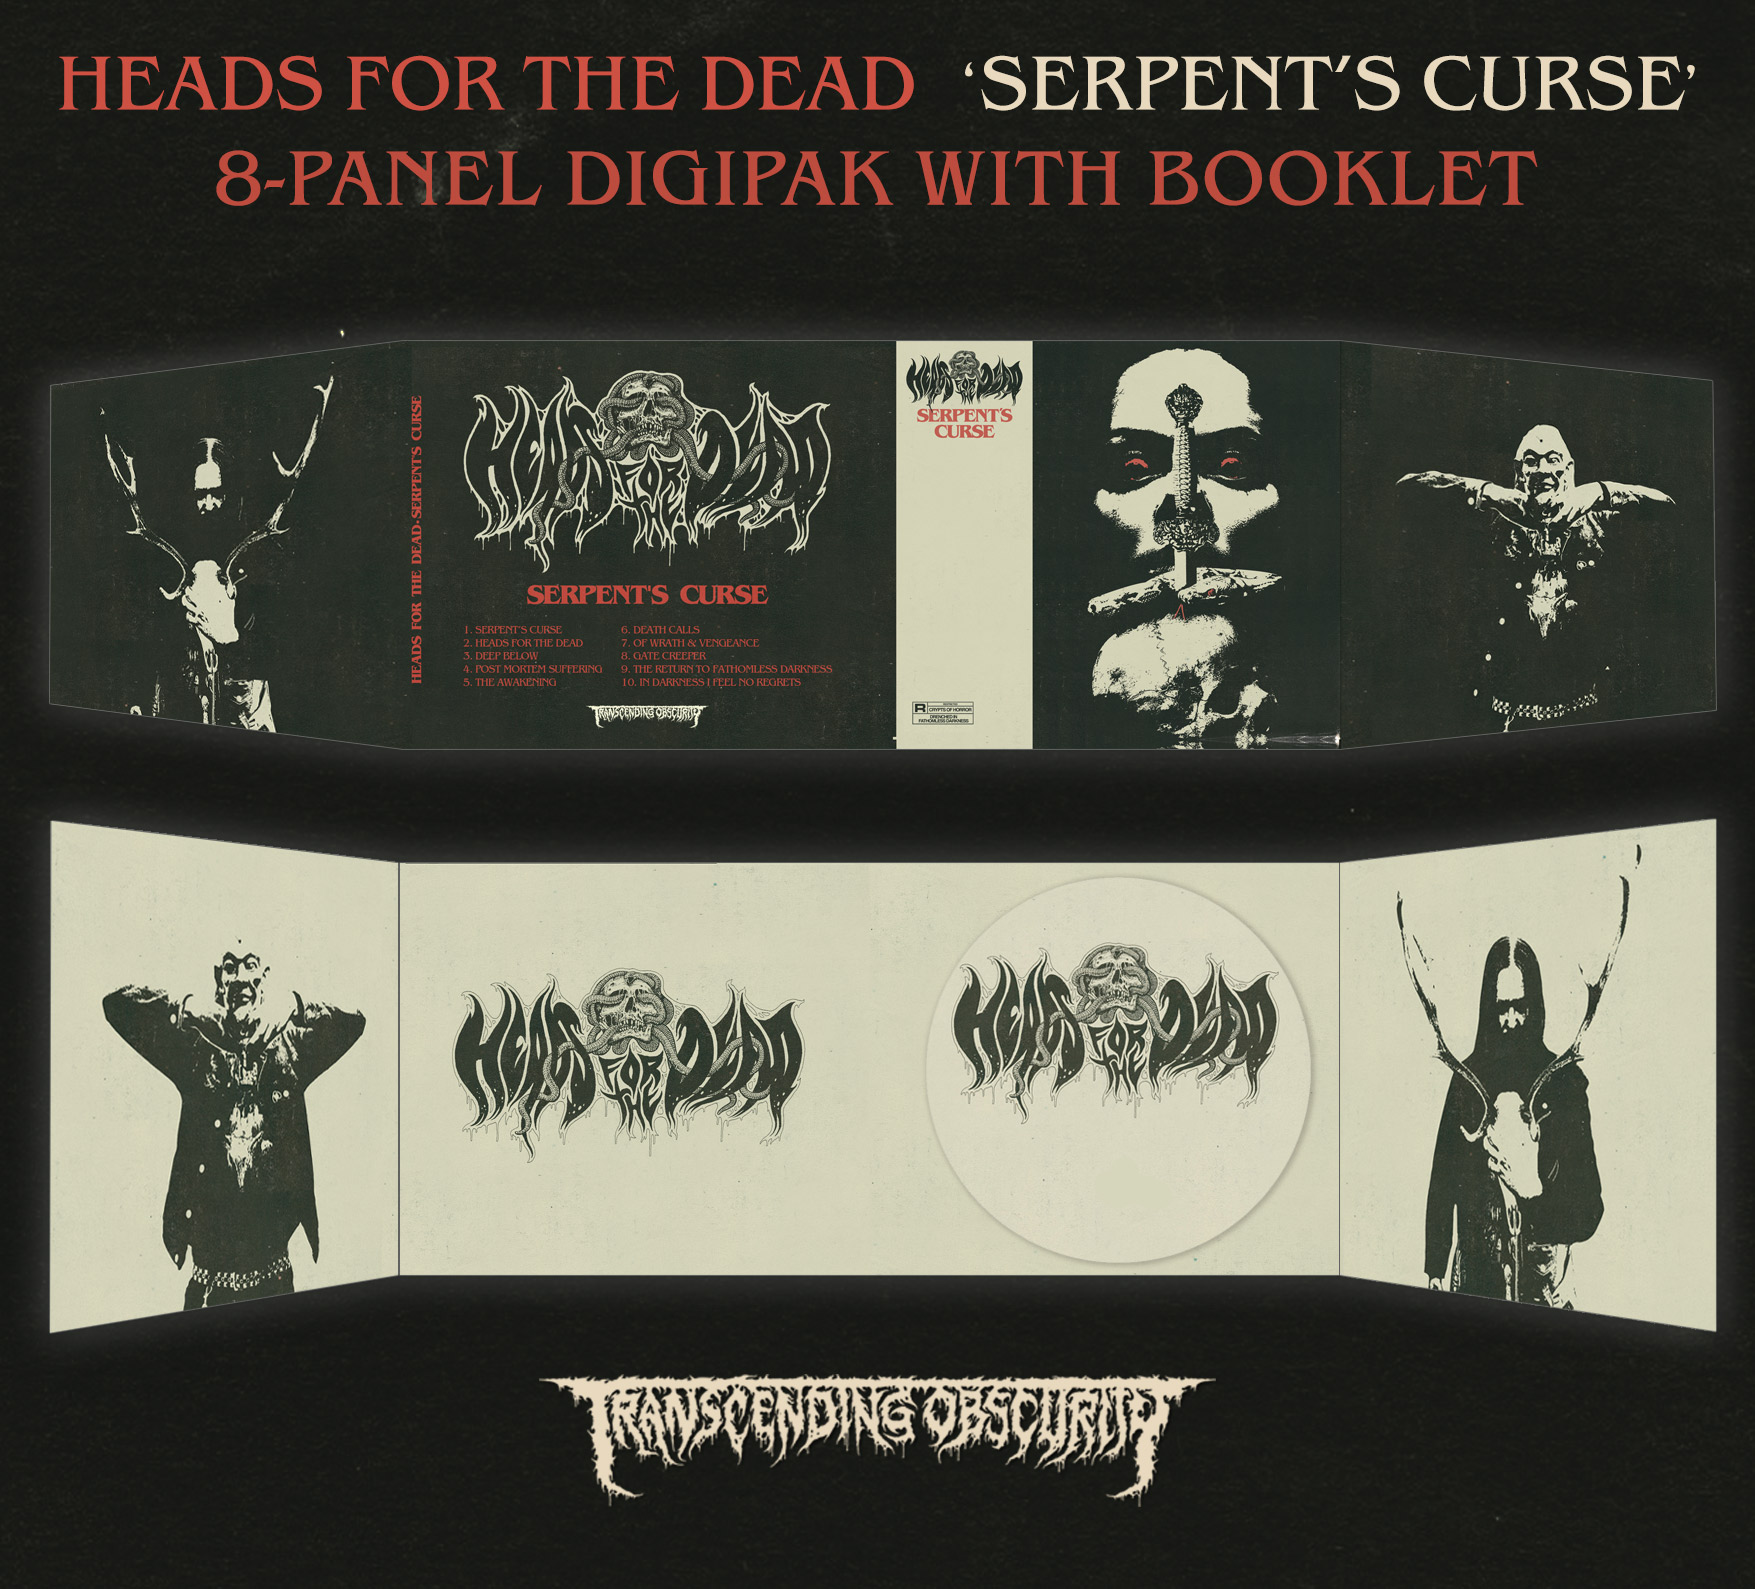 HEADS FOR THE DEAD (International) - Serpent's Curse 8-Panel Digipak CD with Booklet